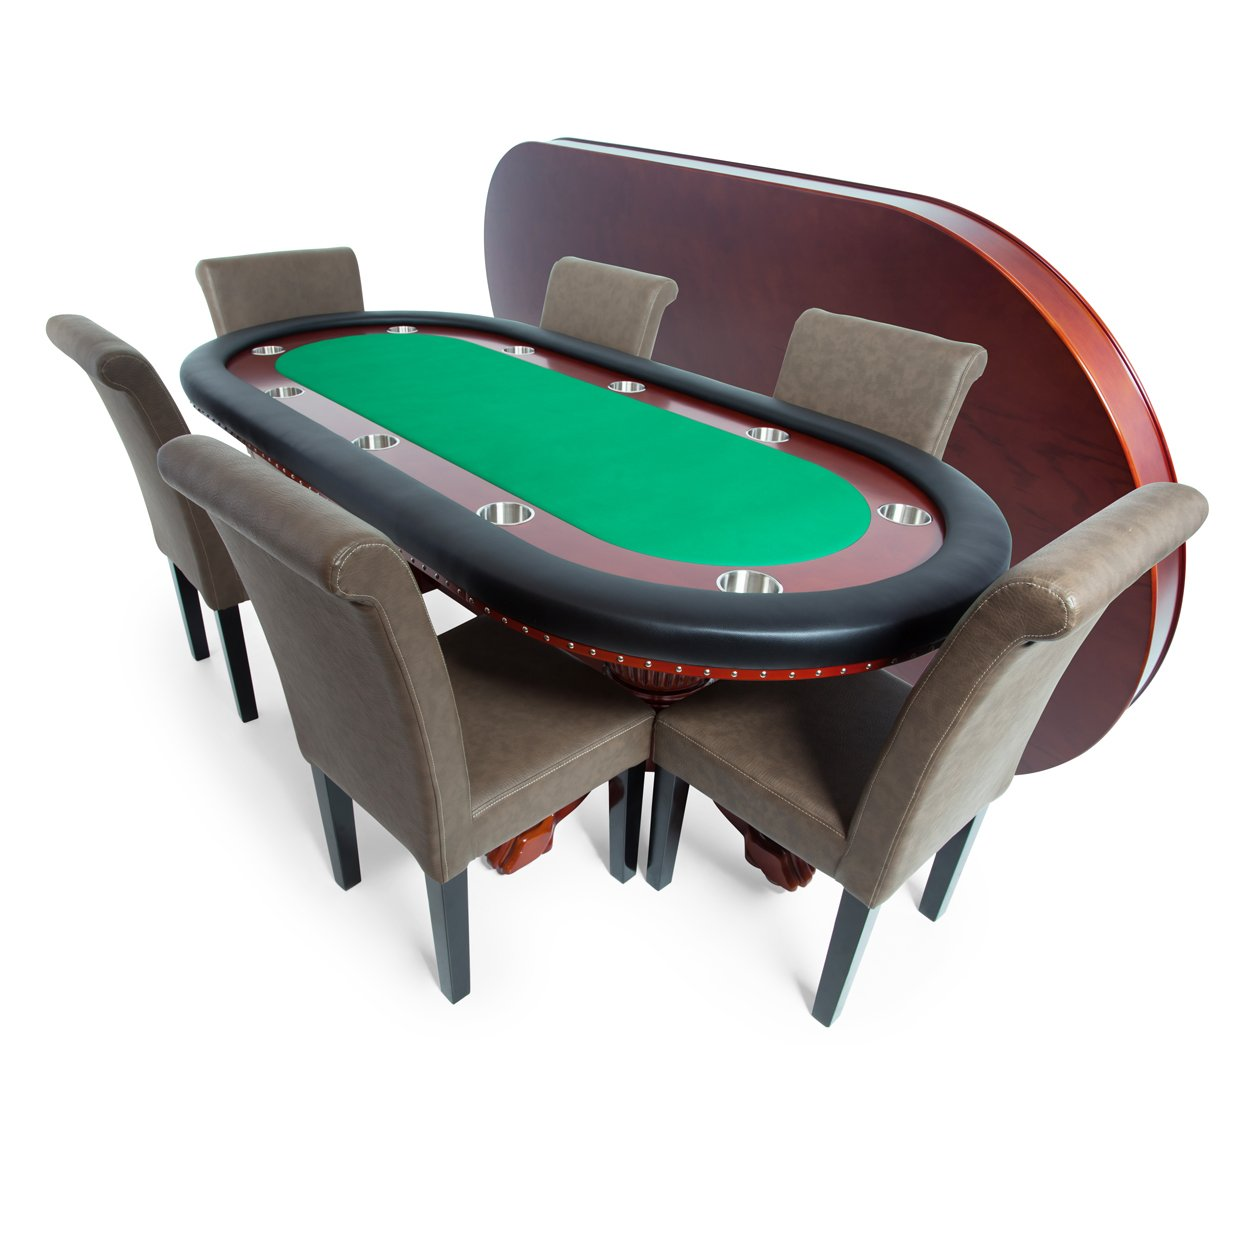 BBO Poker Rockwell Poker Table for 10 Players with Green Felt Playing Surface, 94 x 44-Inch Oval, Includes Matching Dining Top with 6 Lounge Chairs